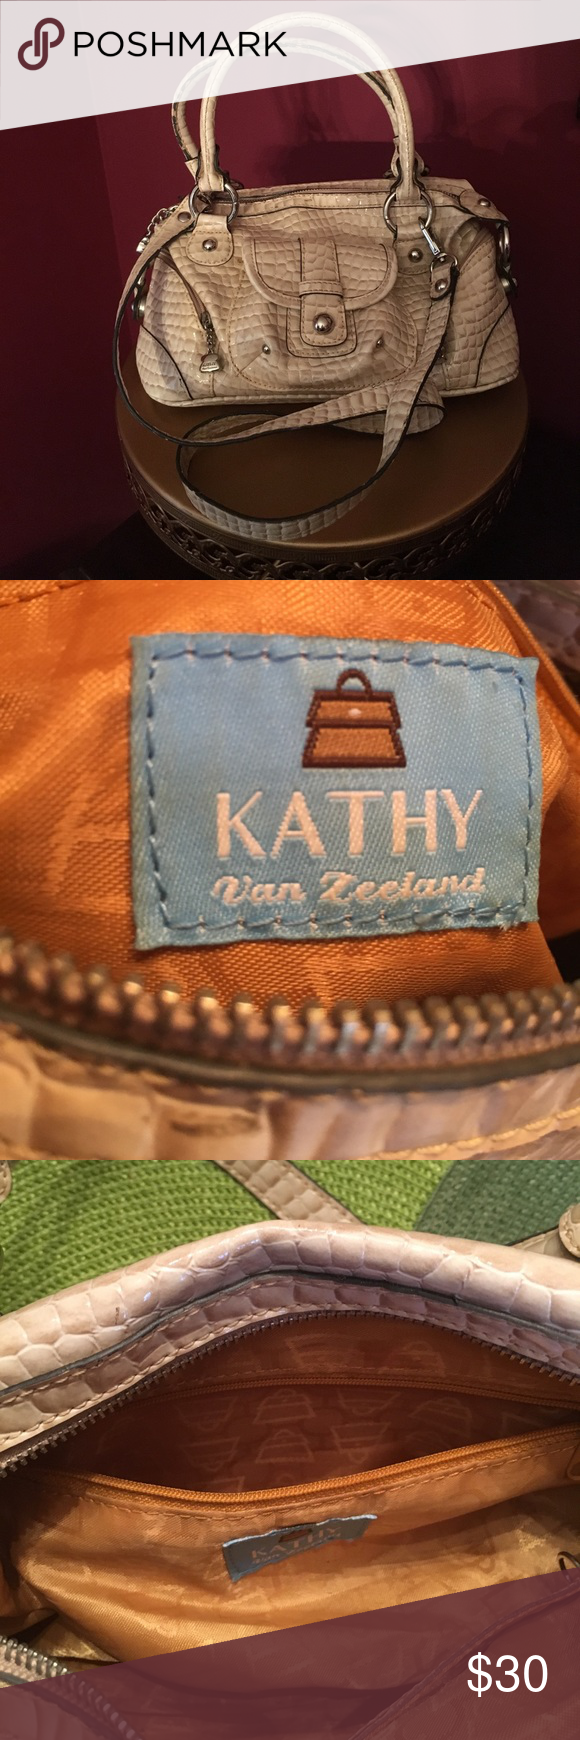 Kathy Van Zeeland Snake-print Handbag Cream and tan snake print Kathy Van Zeeland bag. Detachable, over the shoulder strap. 3 outside compartments. Zip close opening. Inside zippered compartment. All silver look hardware. Great condition. Kathy Van Zeeland Bags Shoulder Bags